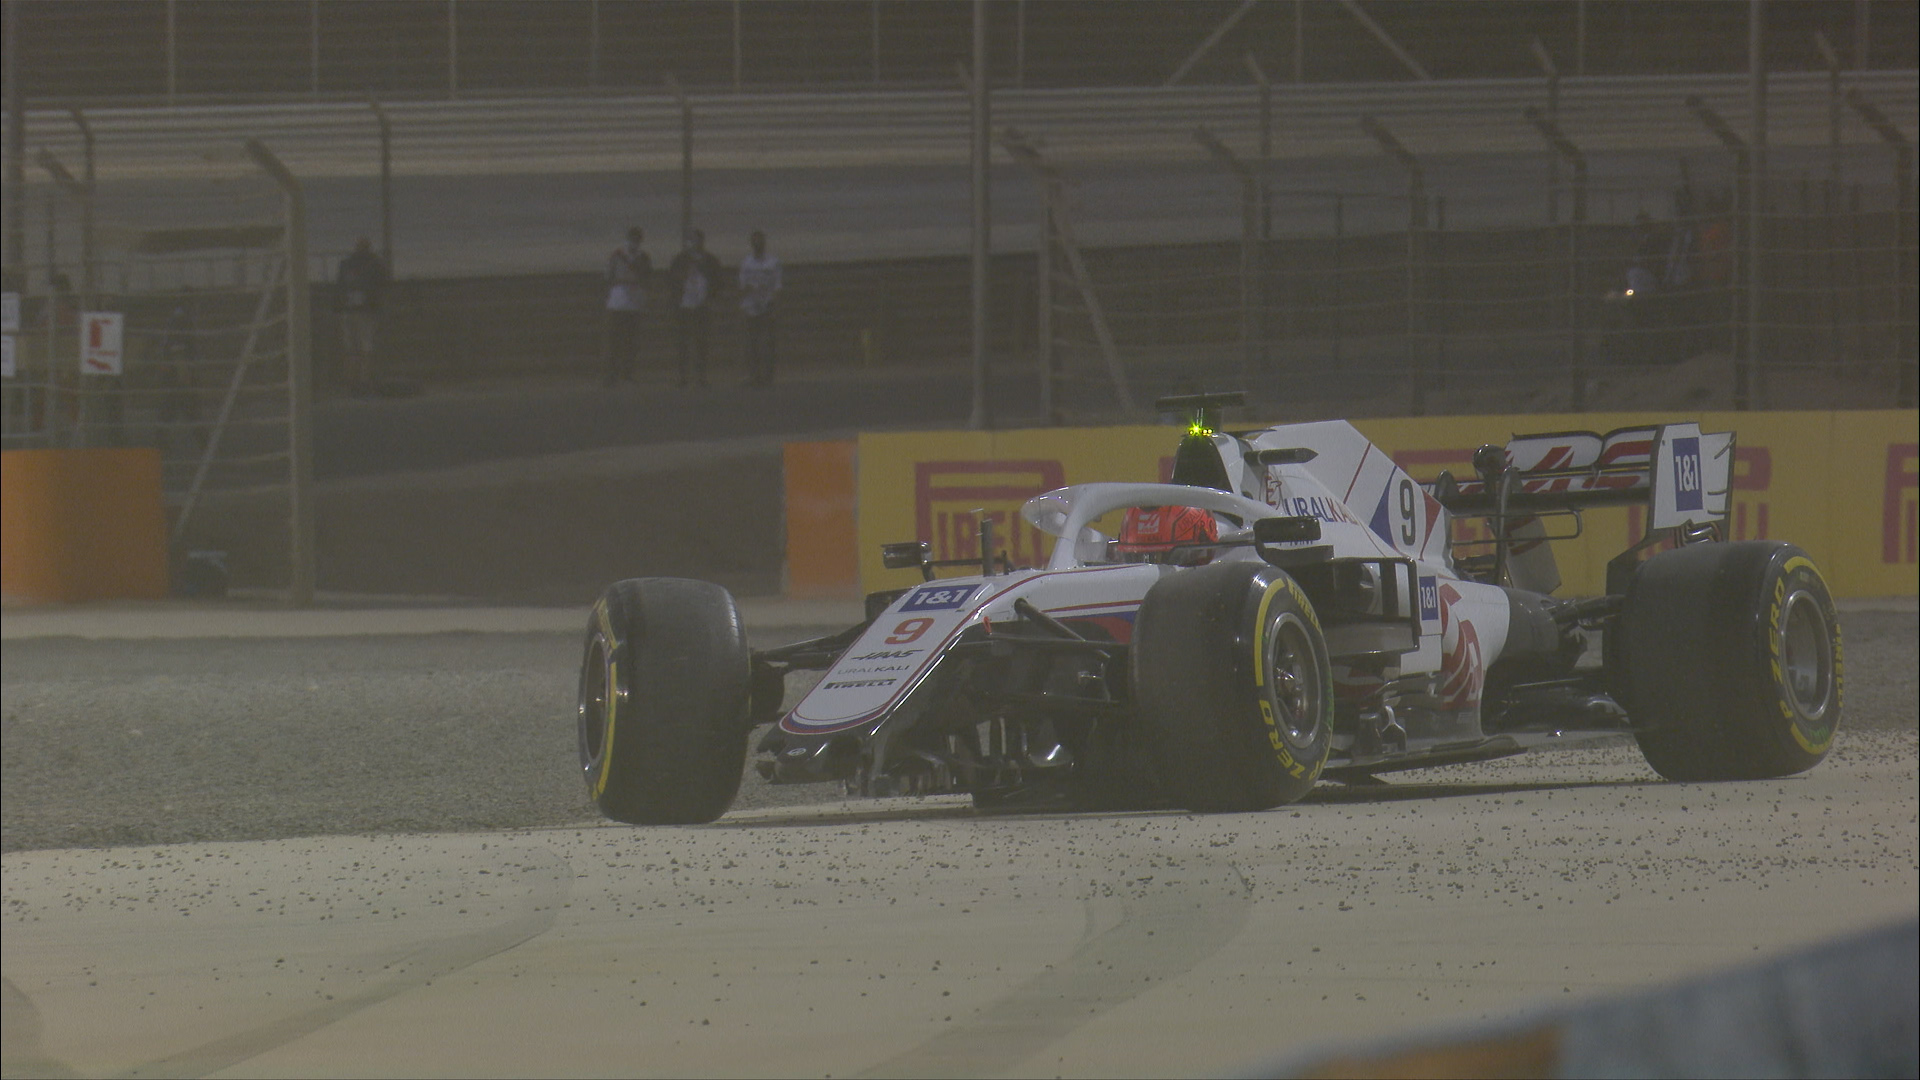 2021 Bahrain Grand Prix: Mazepin spins and crashes on Lap 1